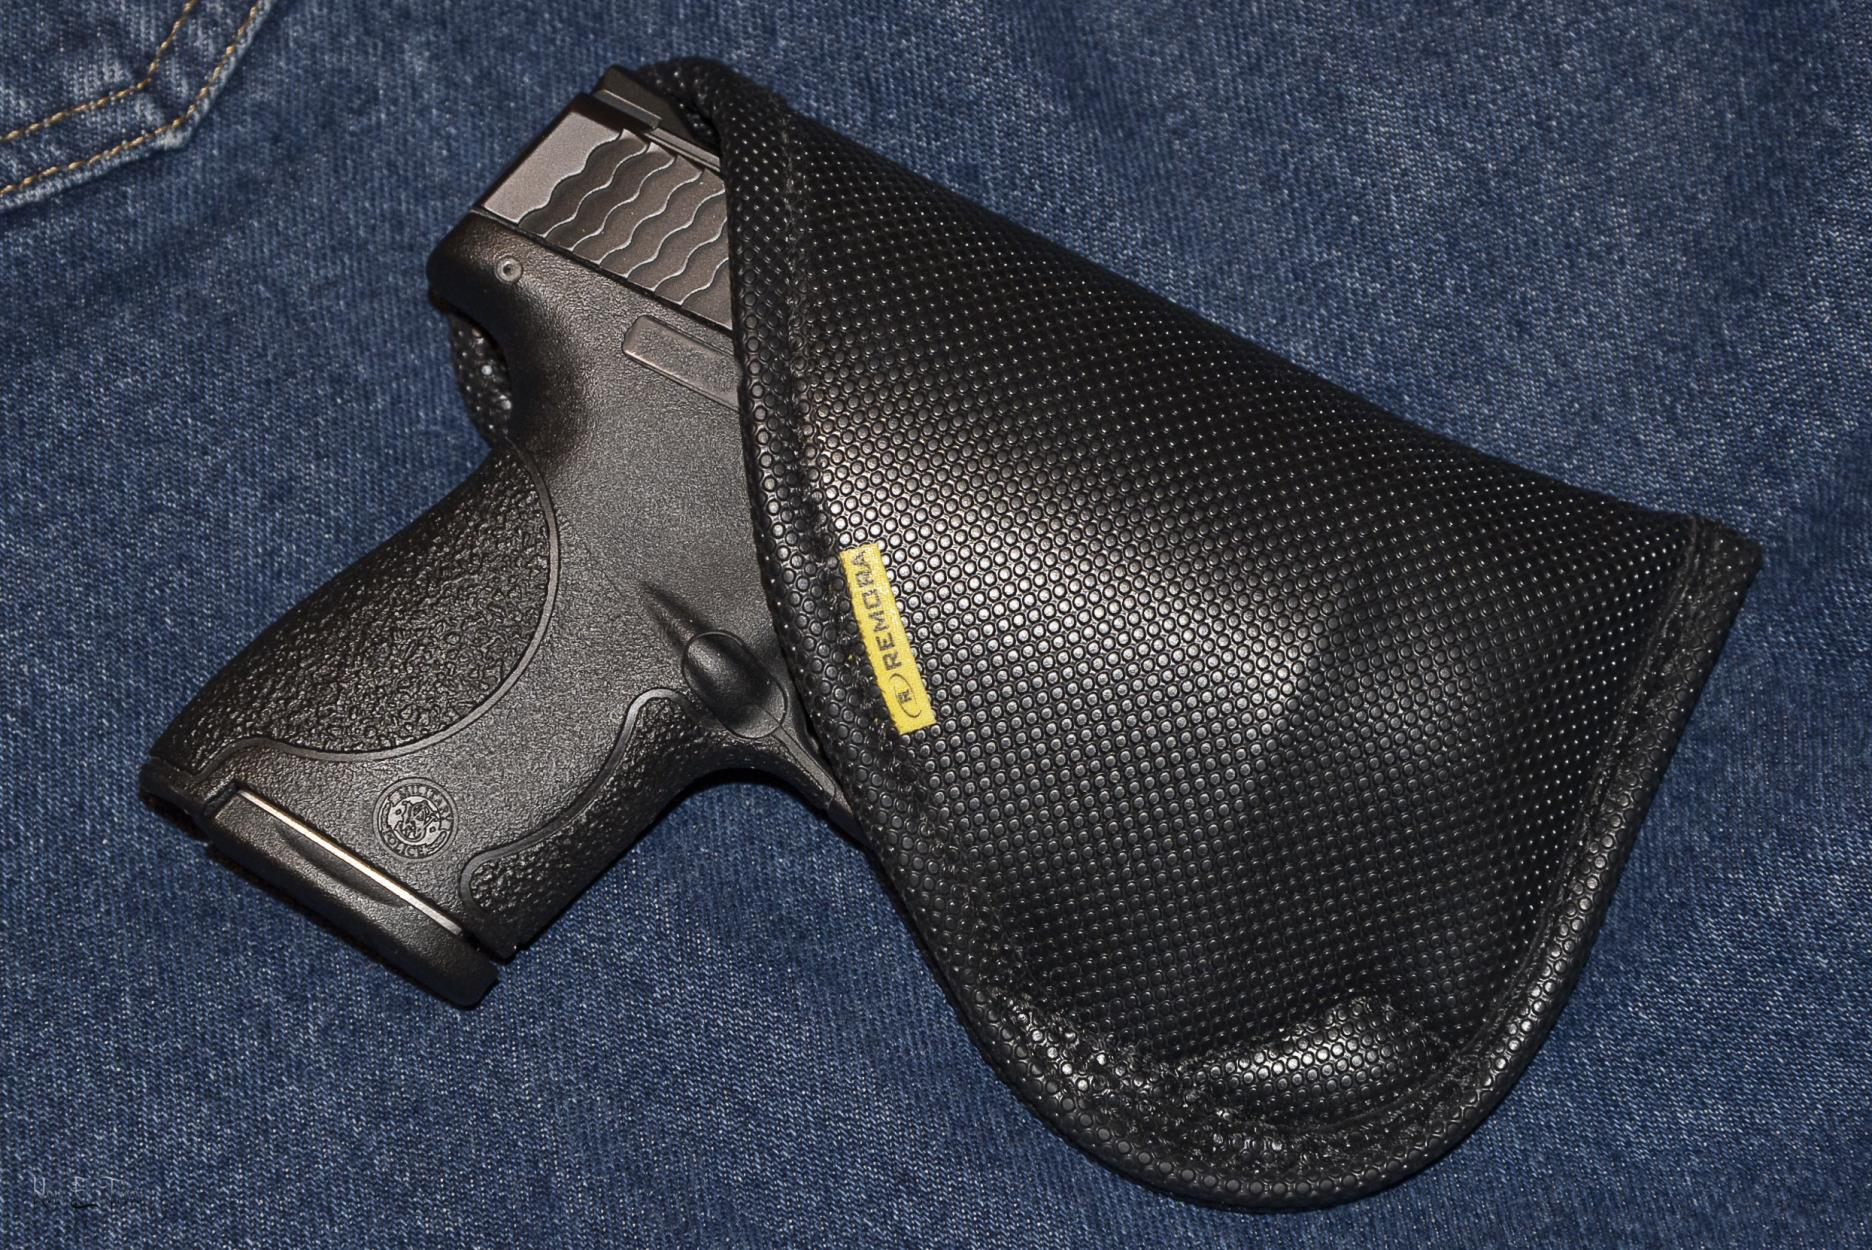 M&P Shield and Remora Holsters...-_dsc5611.jpg